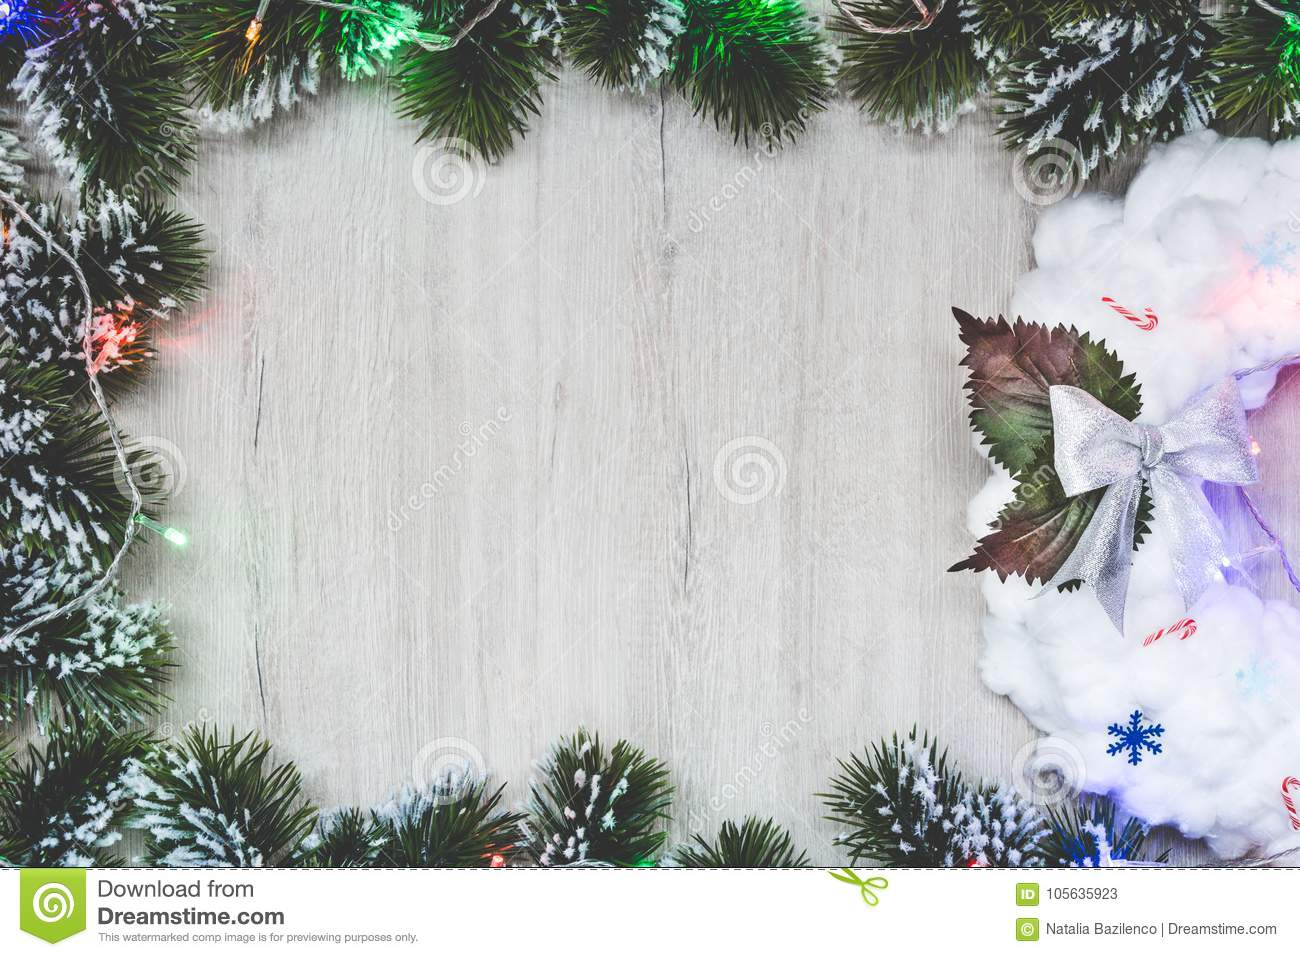 White Christmas Wreath In A Frame Of Christmas Tree Branches On A ...